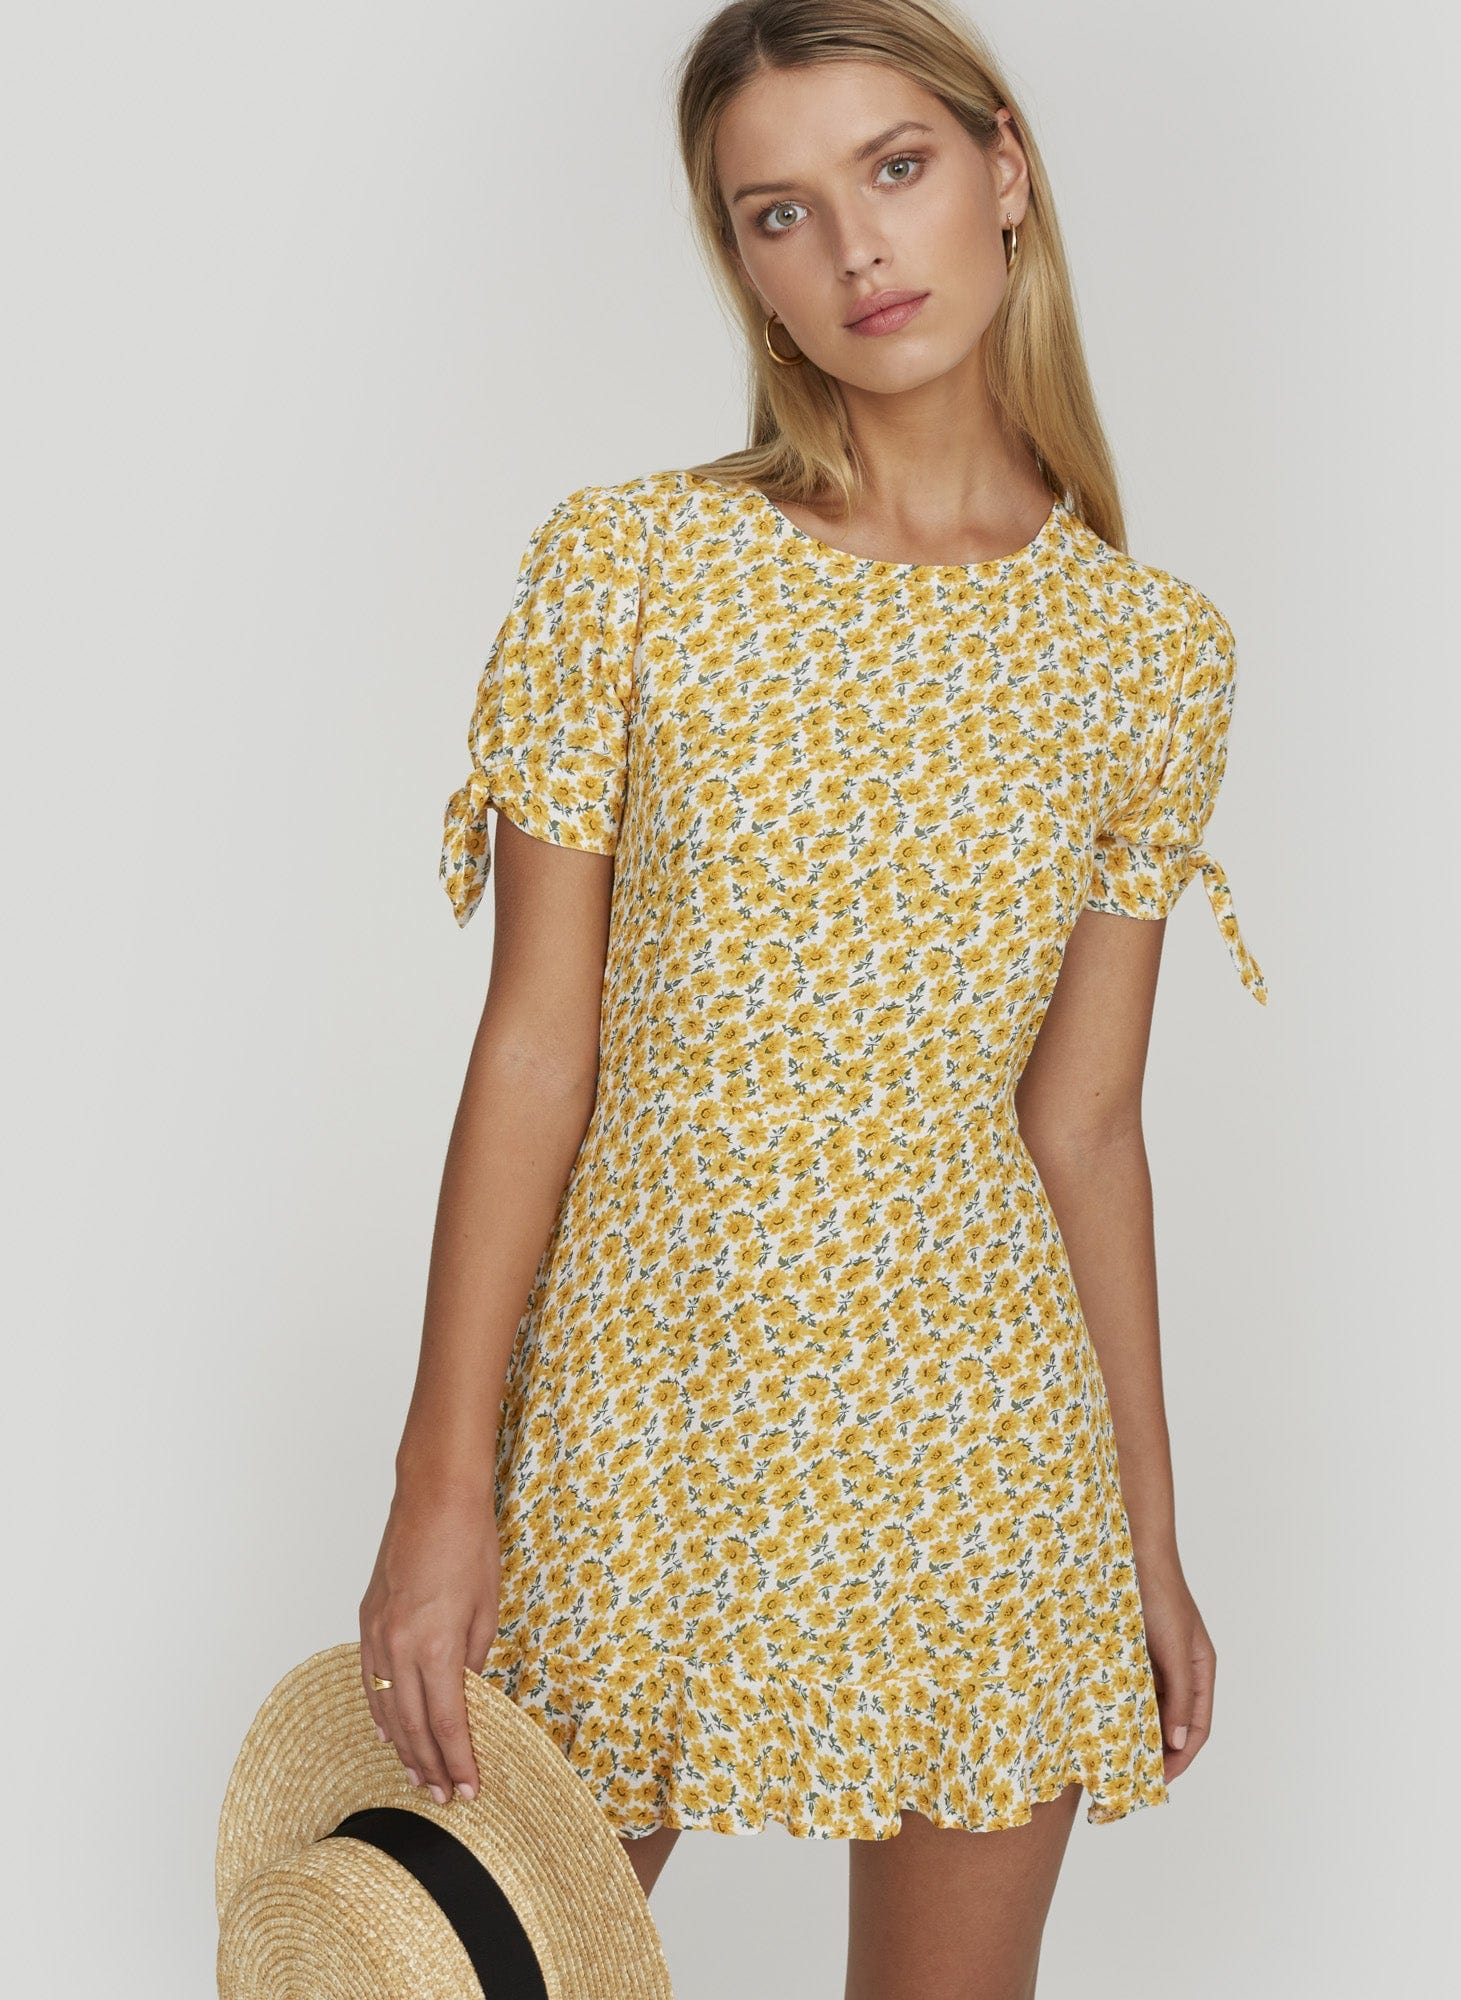 Marguerite Floral - Yellow - Daphne Dress - Final Sale